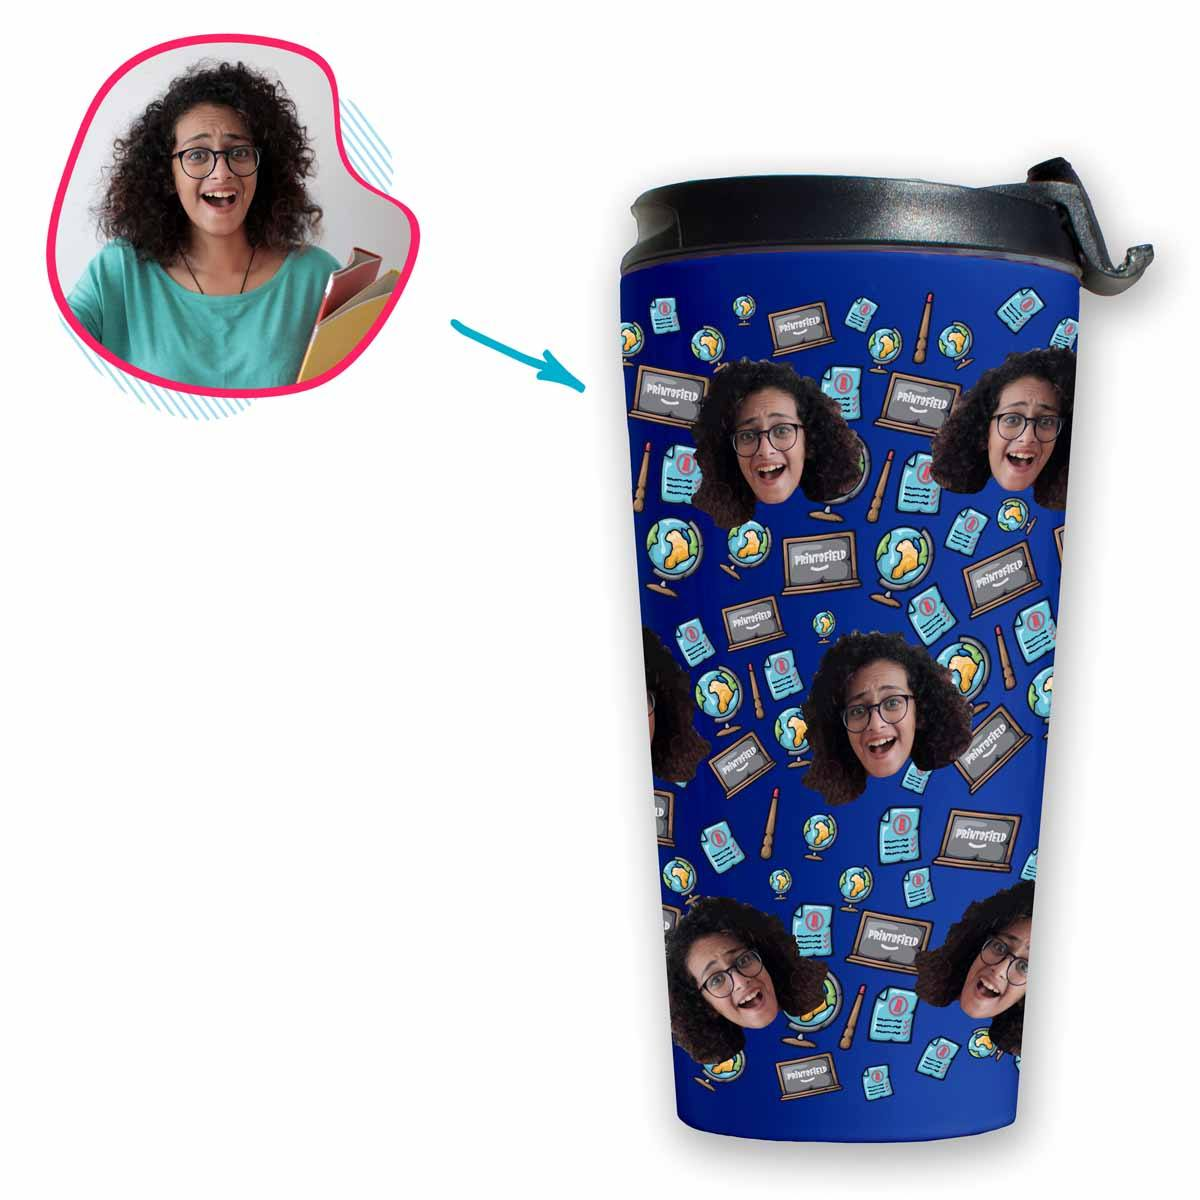 Darkblue Teacher personalized travel mug with photo of face printed on it